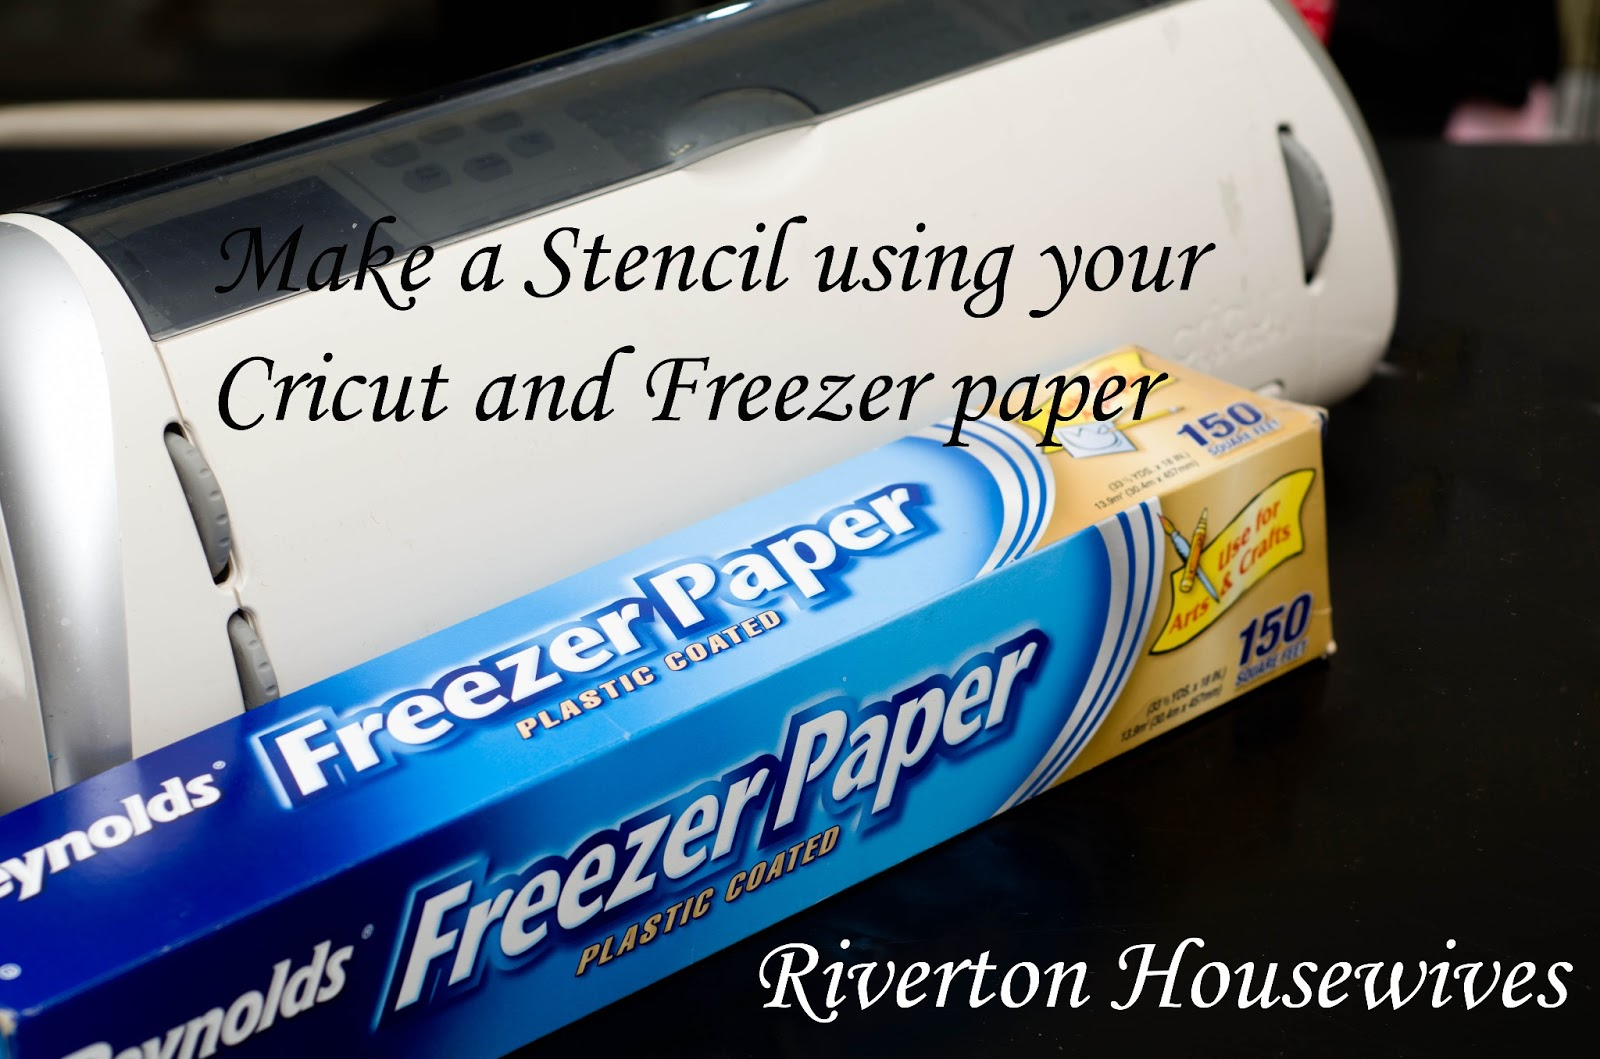 Cut Freezer Paper with your Cricut Expression - Housewives of Riverton